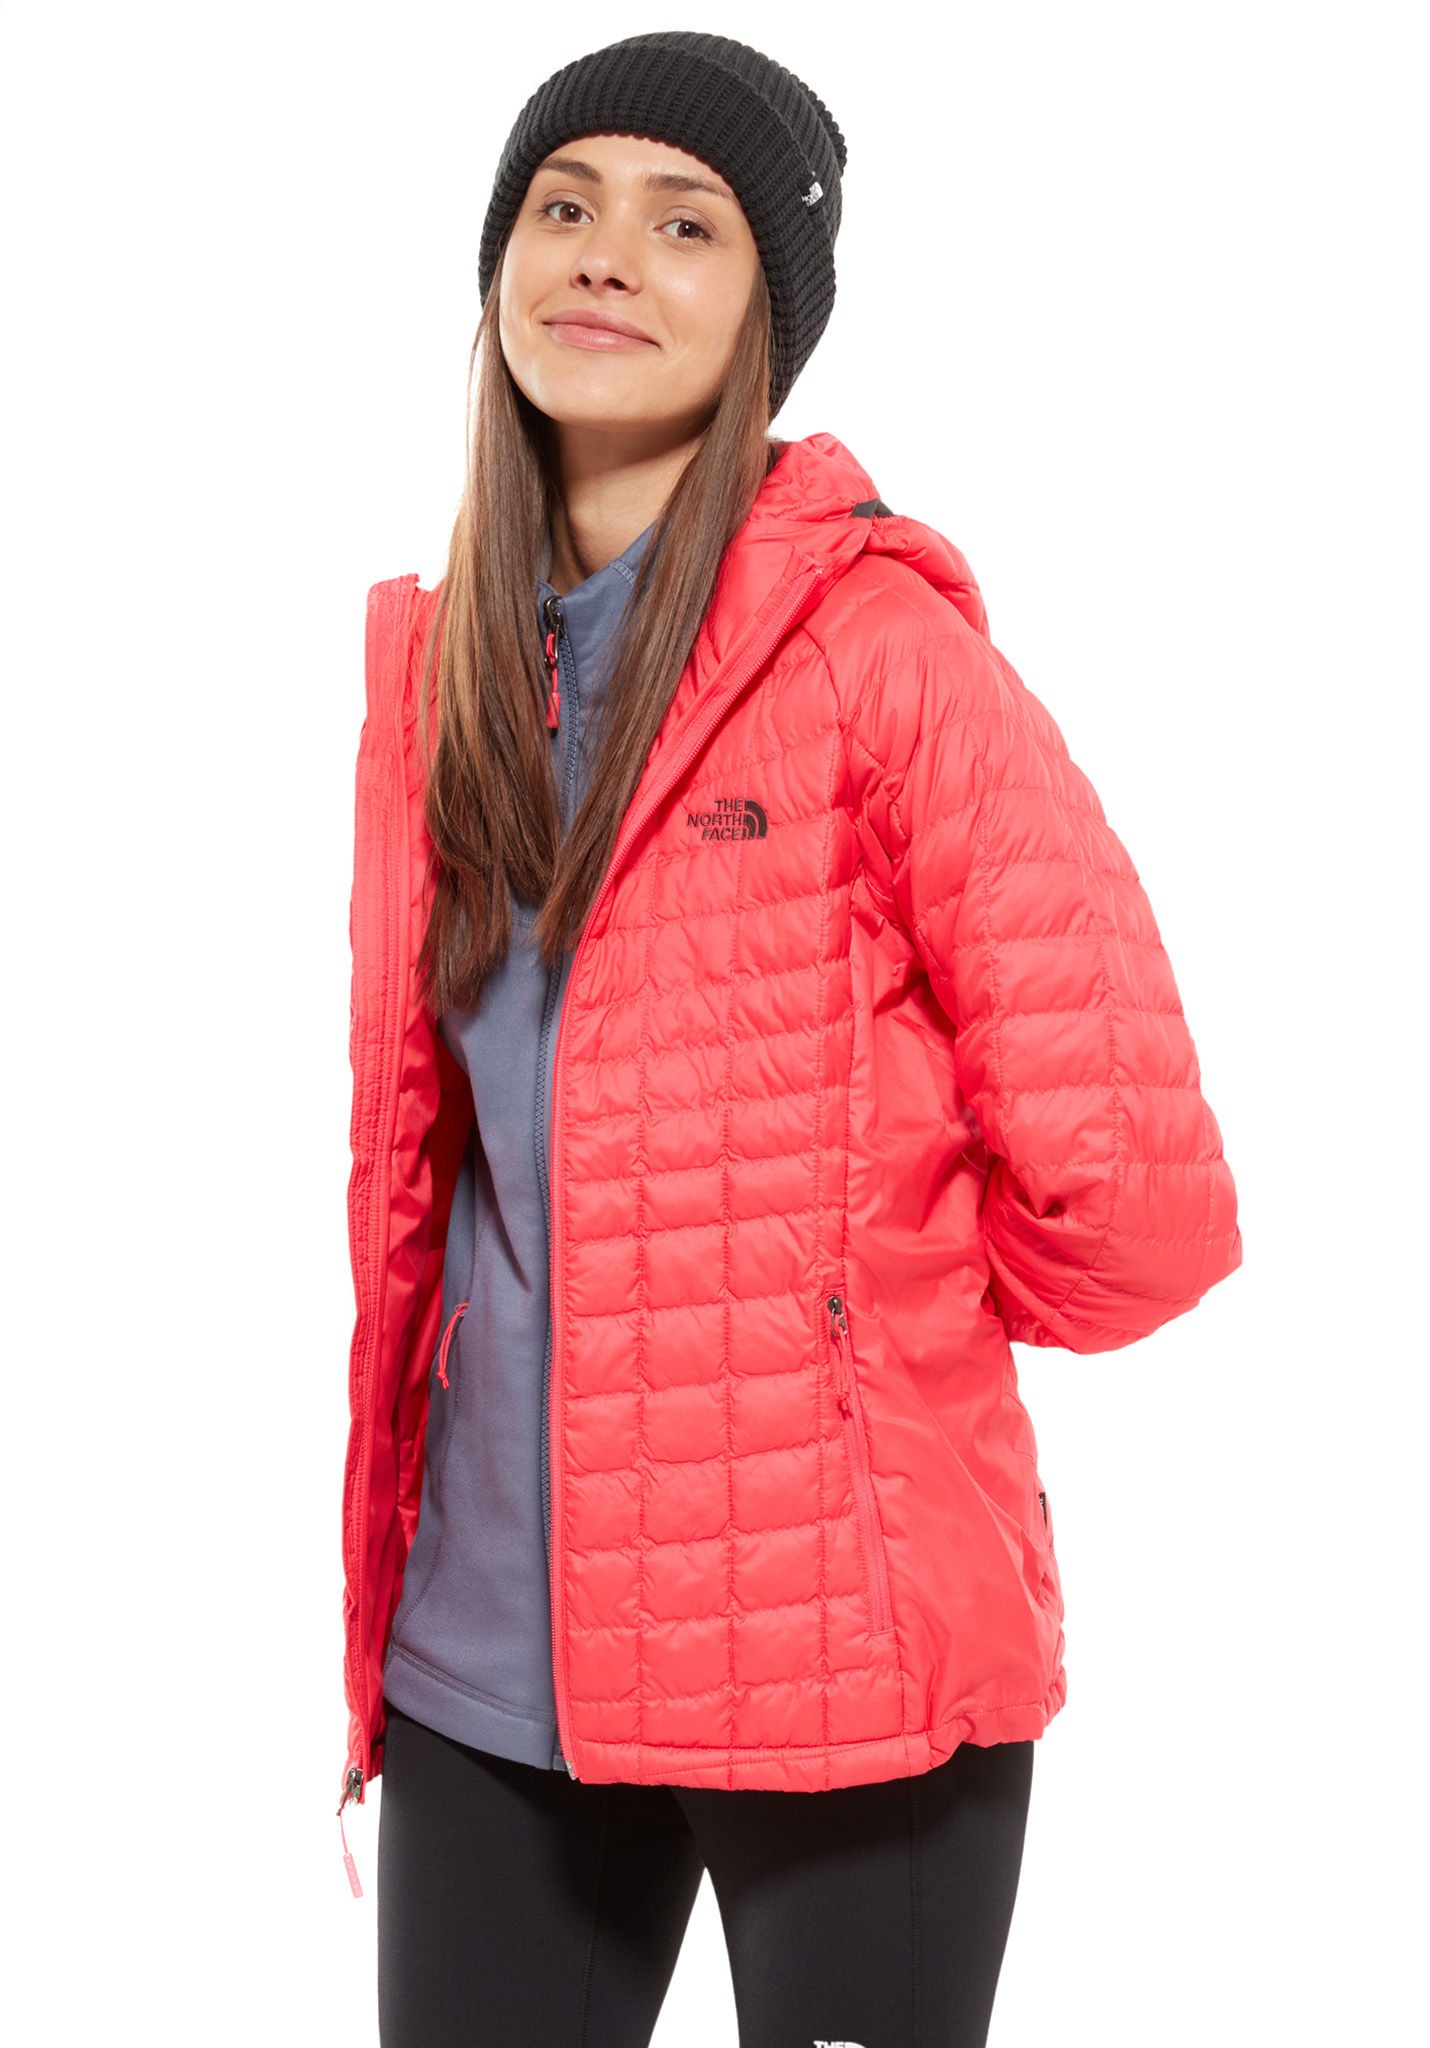 73a97fd88e THE NORTH FACE Thermoball Sport - Outdoorjacke für Damen - Pink - Planet  Sports